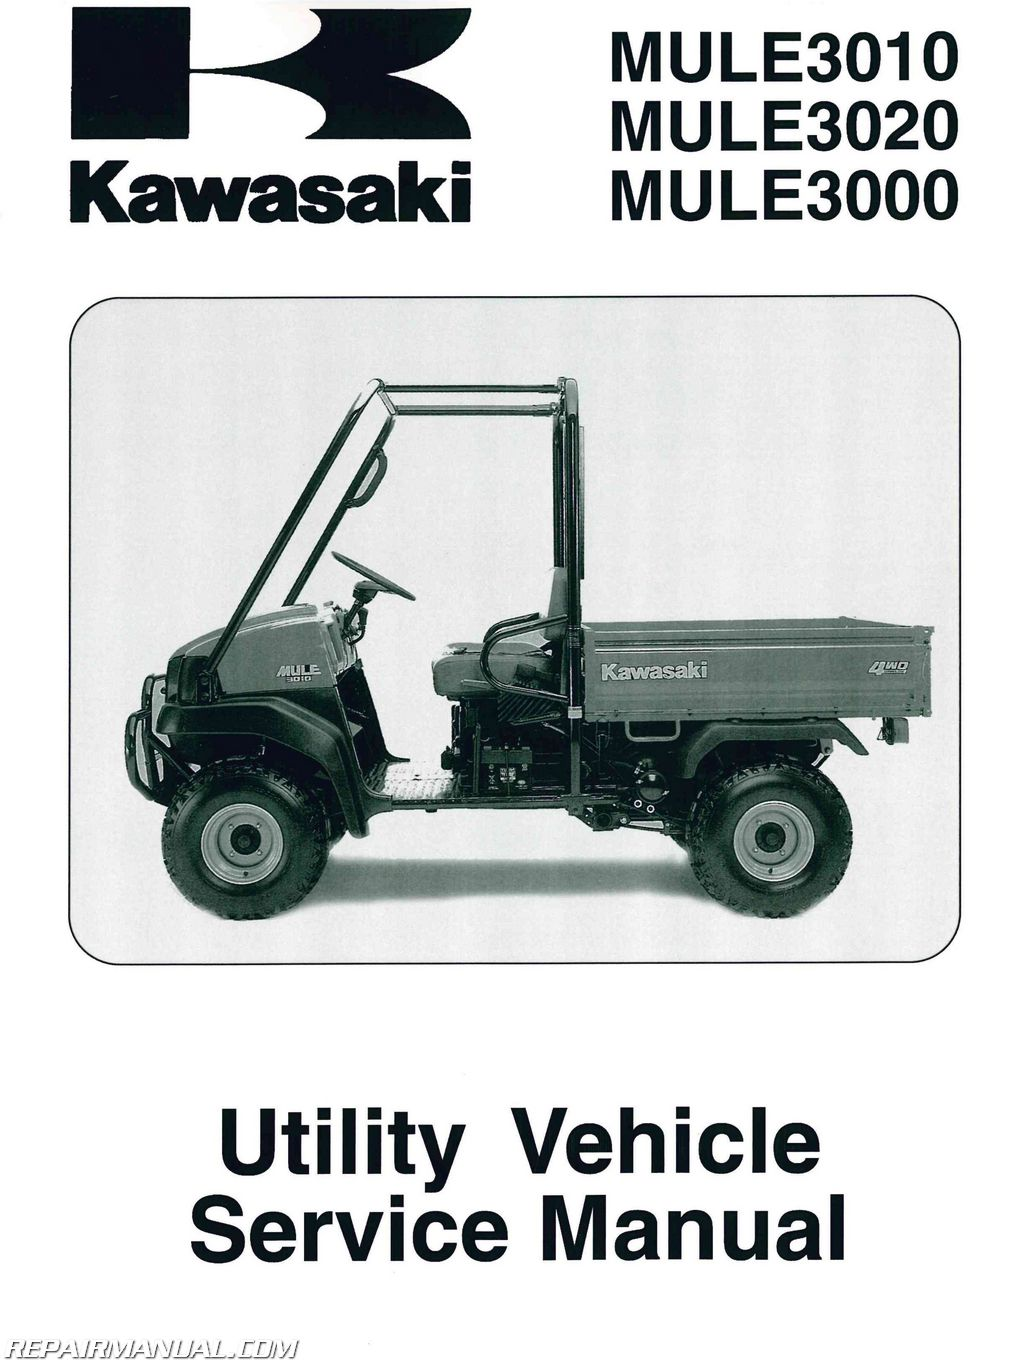 2001 2008 kawasaki kaf620 mule 3000 3010 3020 service. Black Bedroom Furniture Sets. Home Design Ideas